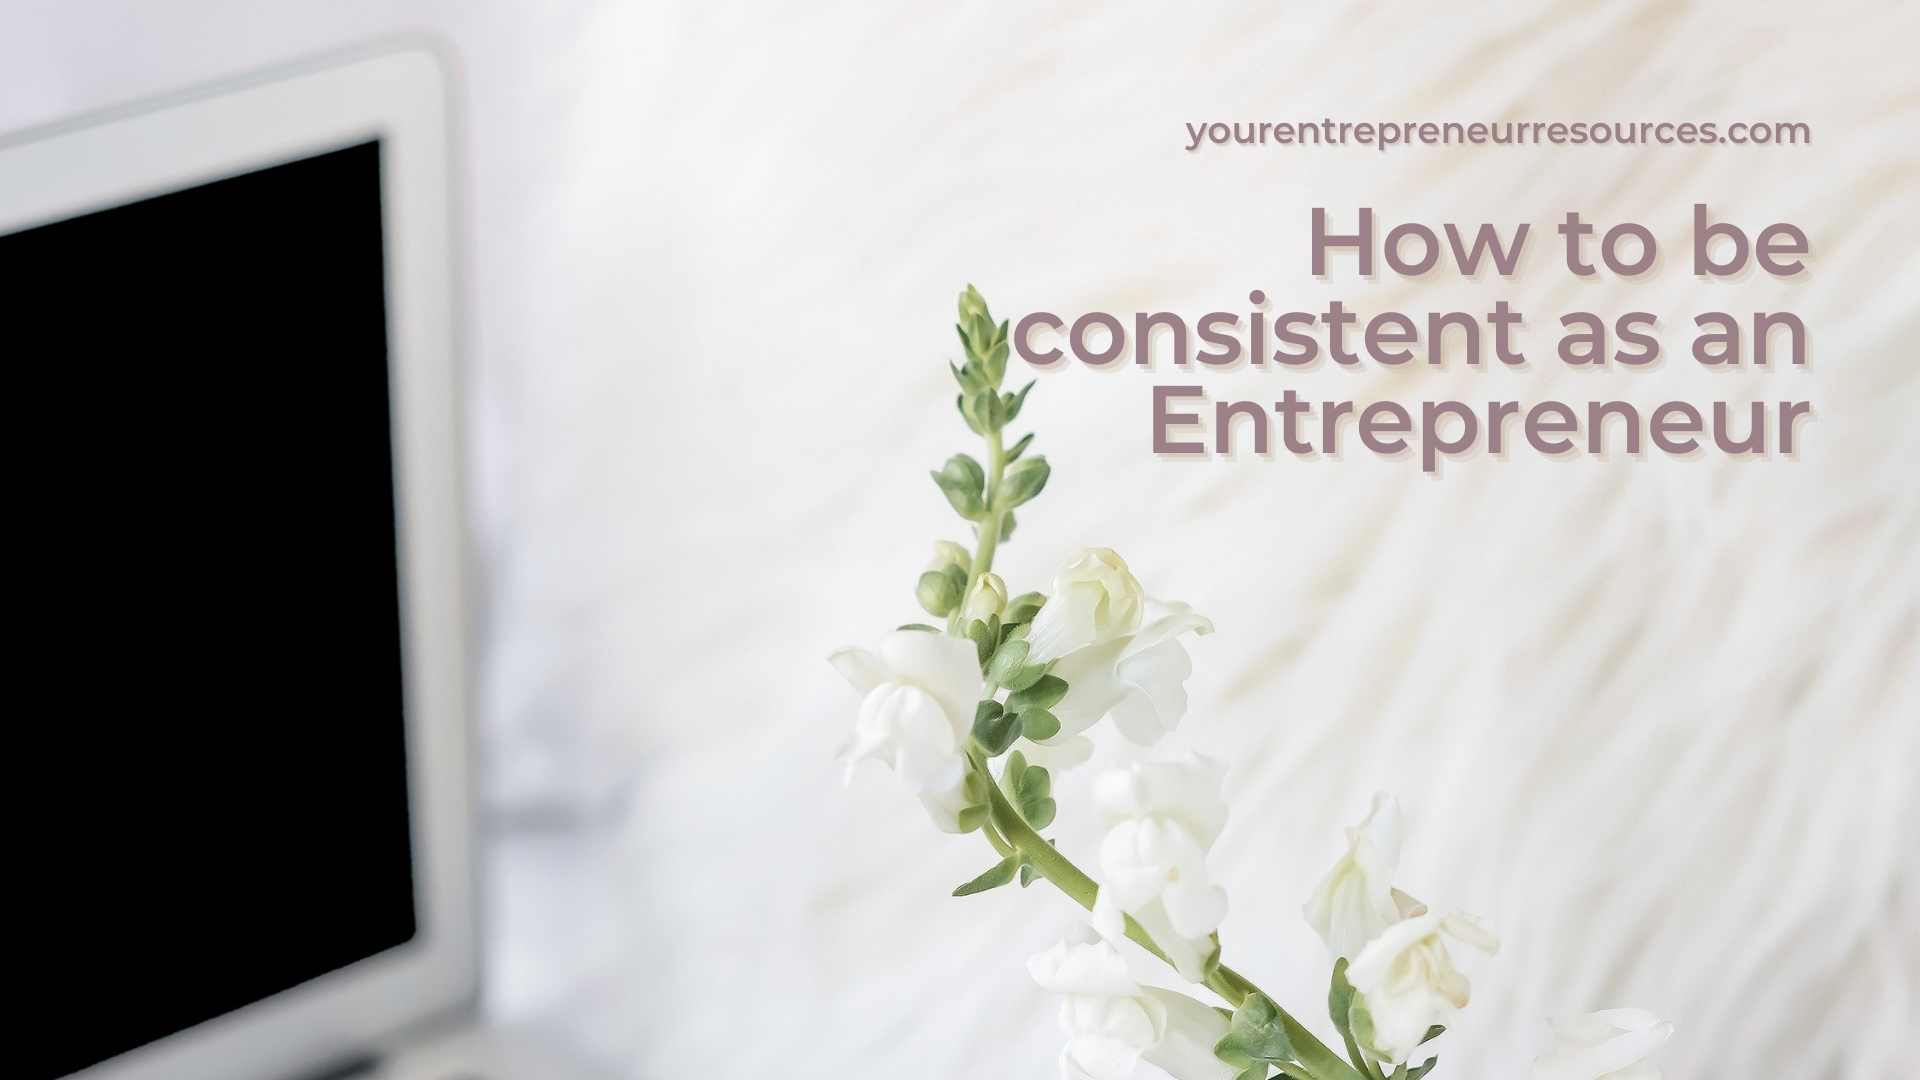 How to be consistent as an Entrepreneur 7 tips to make more money online